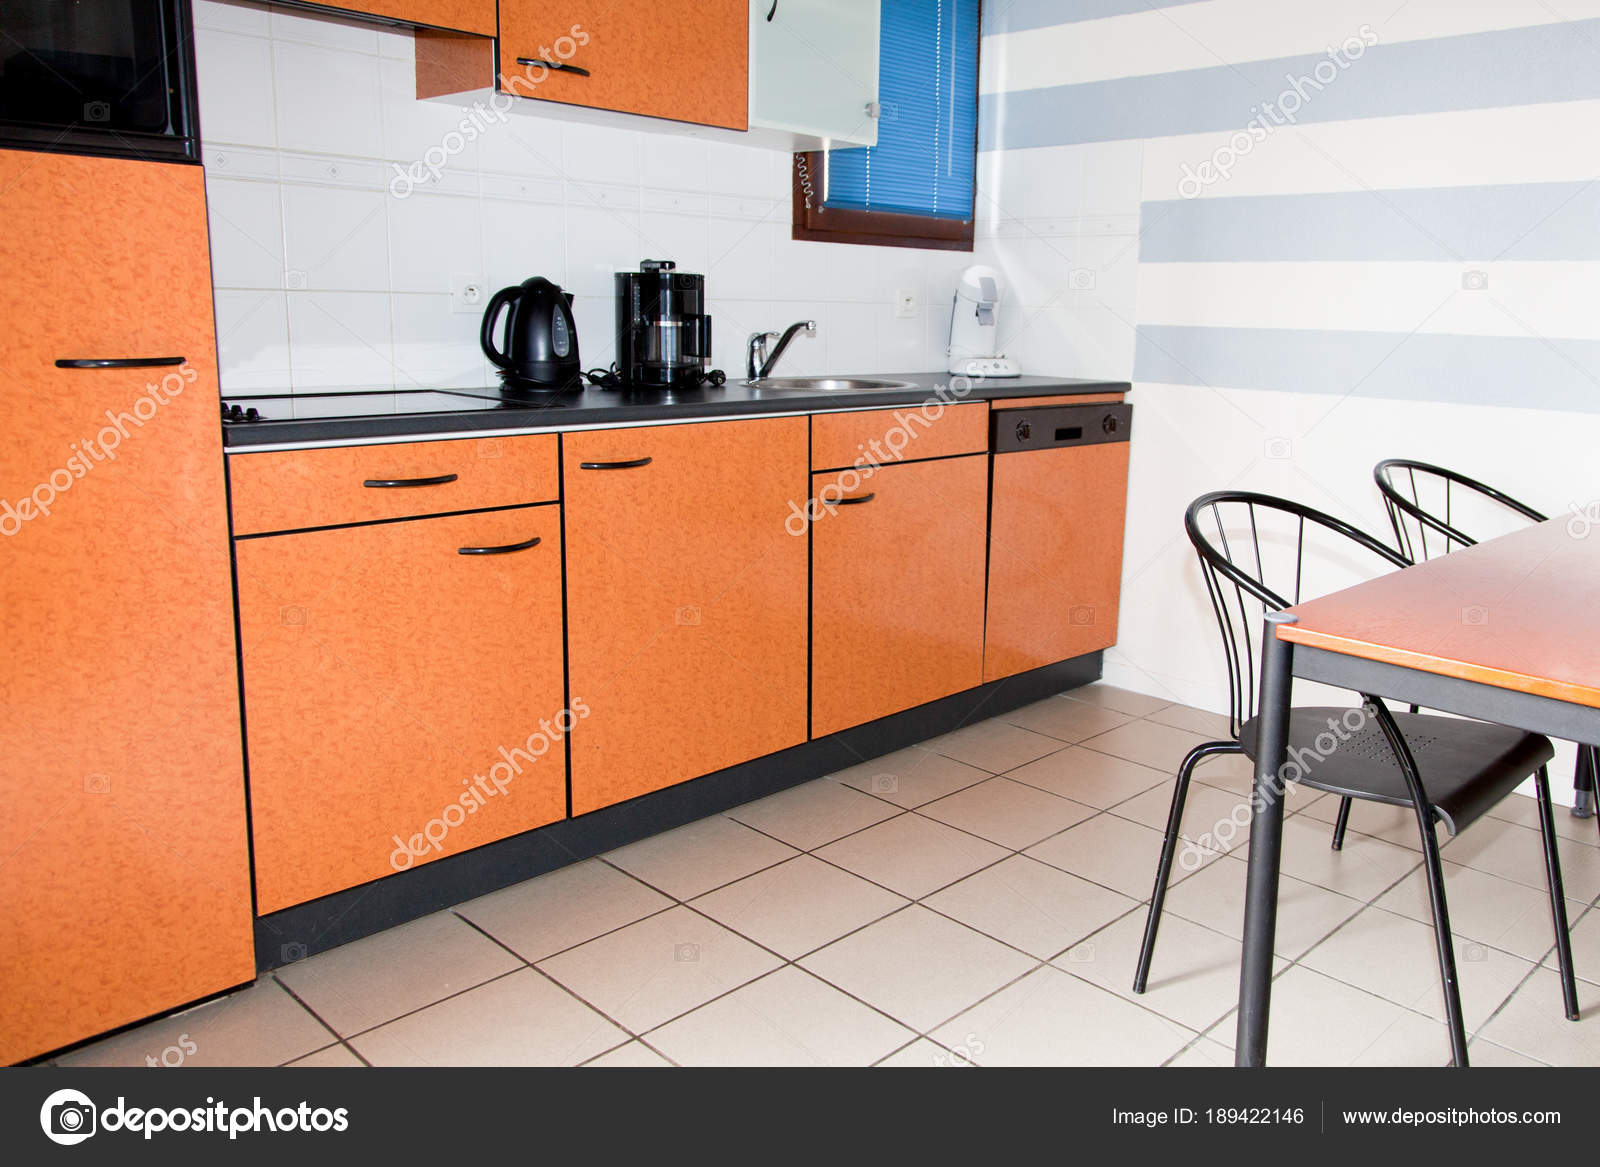 Real Vintage Style Kitchen Appliances Beautiful Interior Stock Photo Image By C Oceanprod 189422146